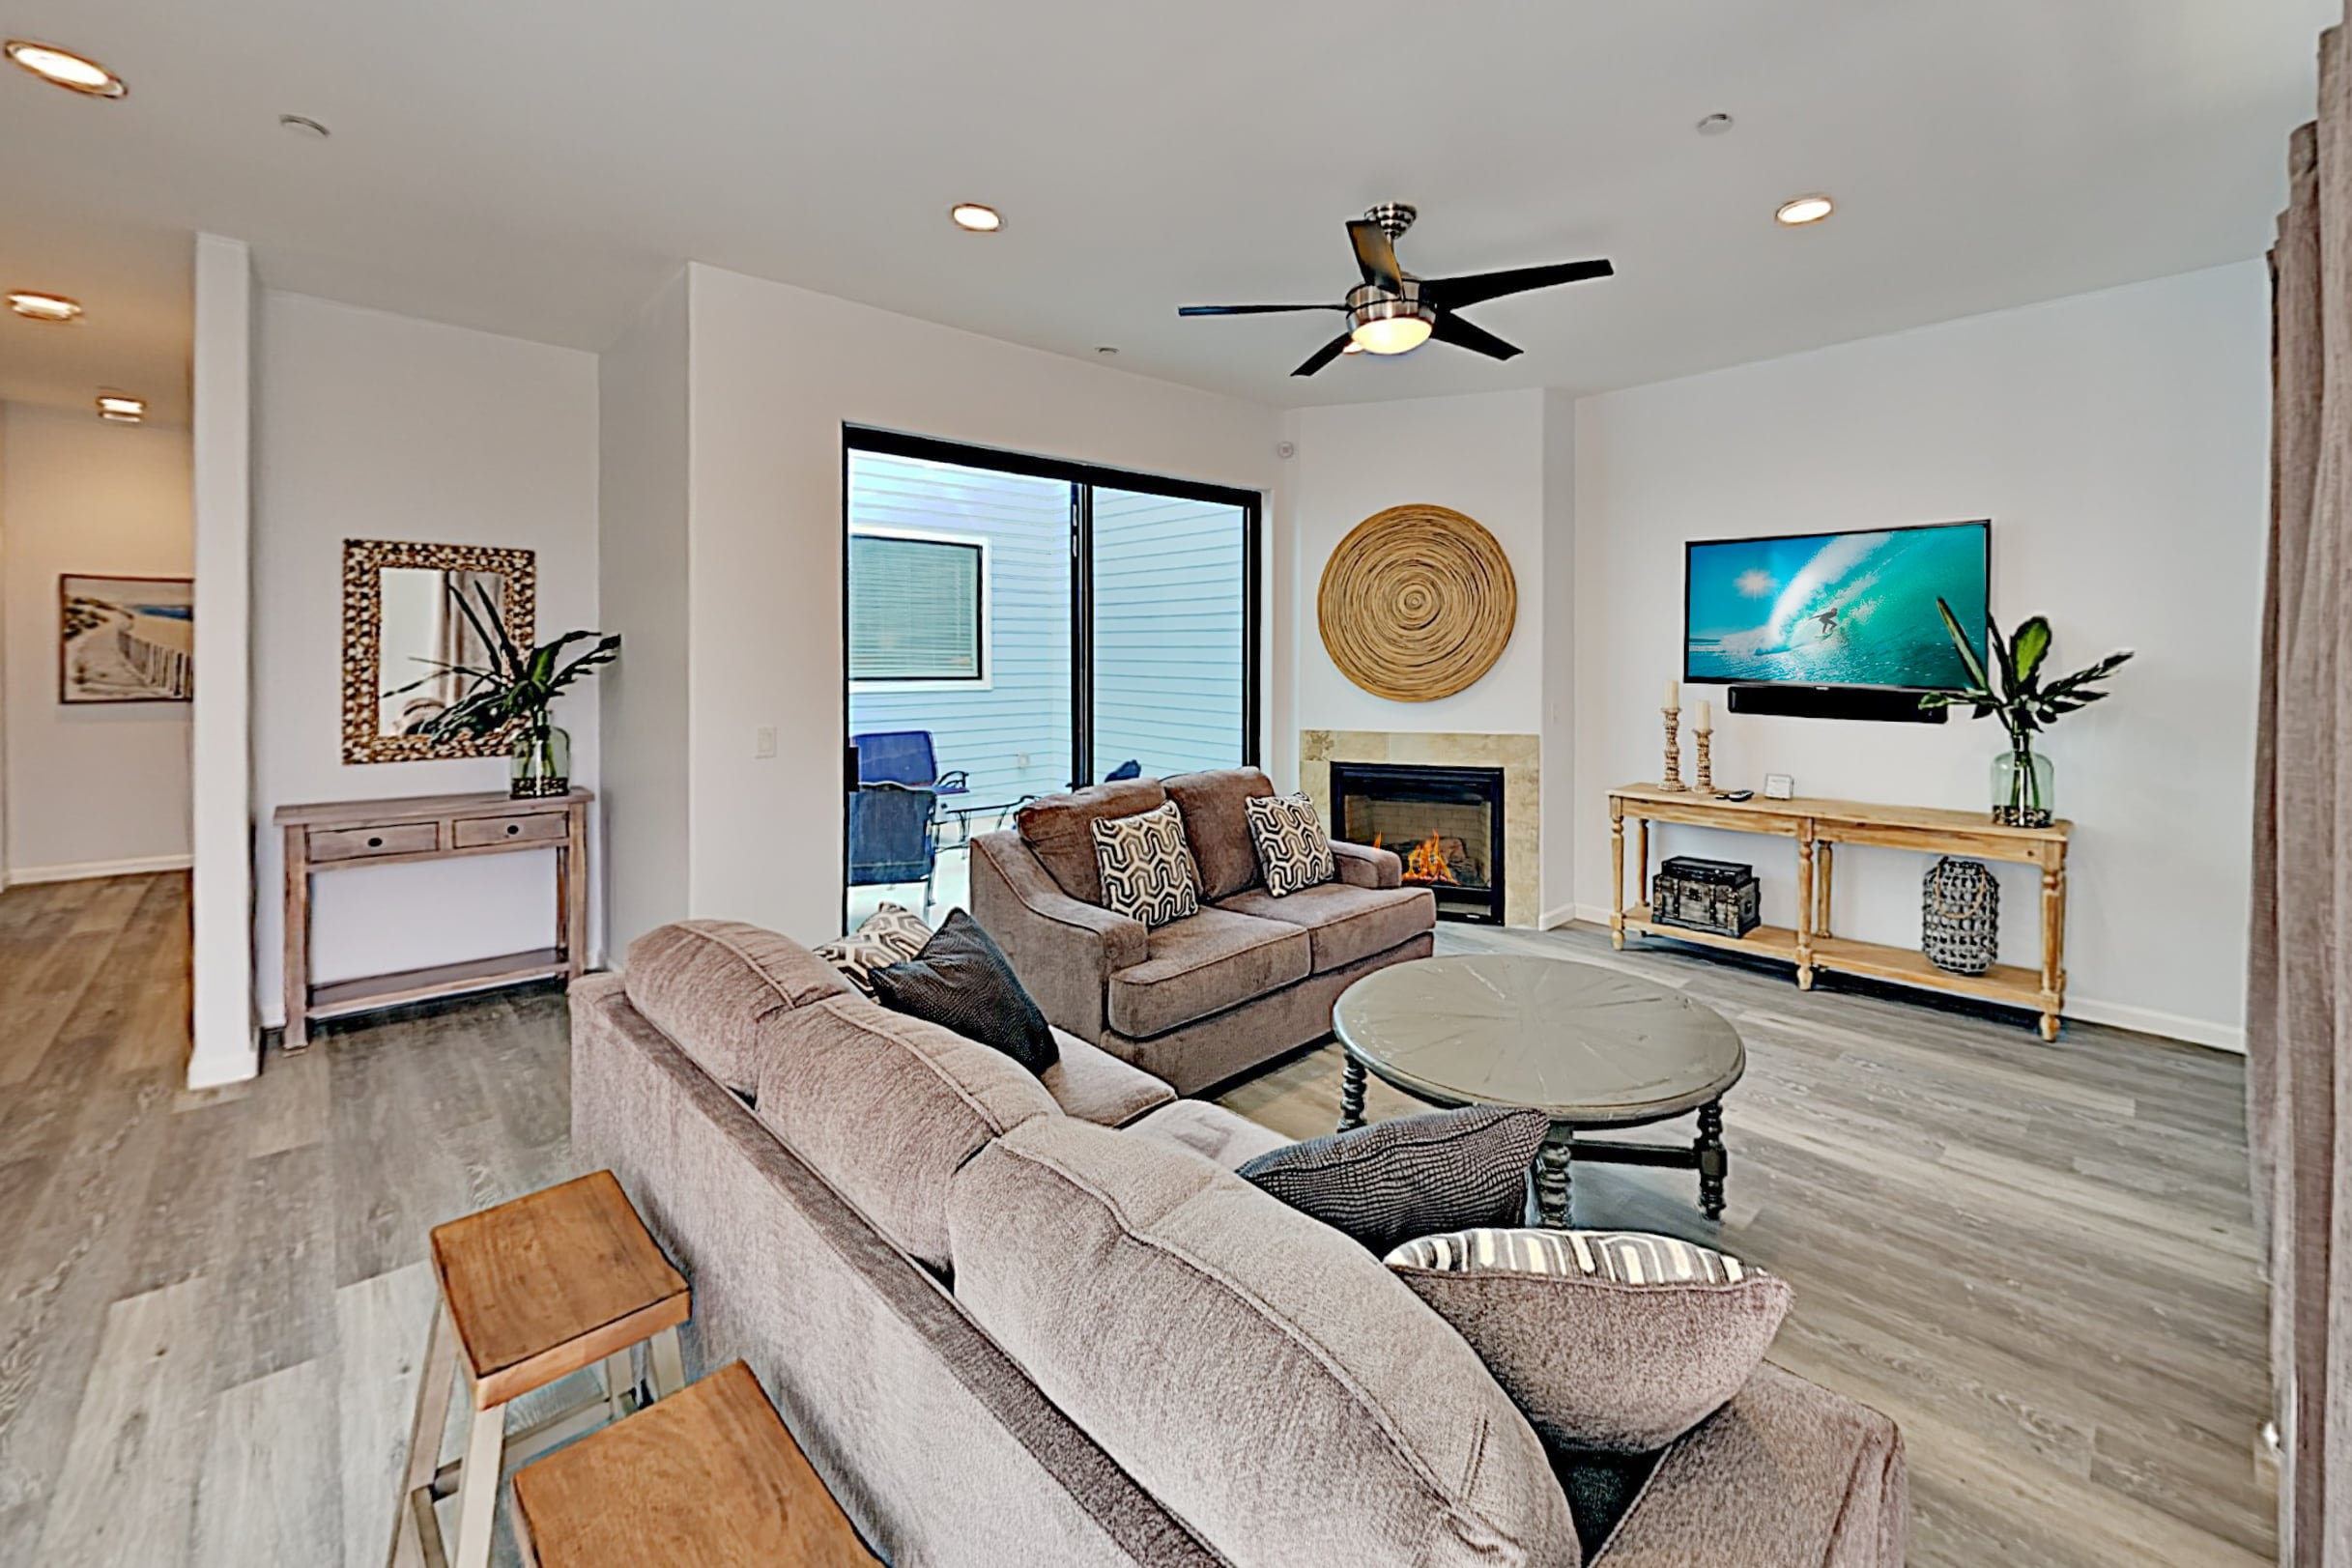 Property Image 1 - Beachfront Condo with Ocean Views & Luxe Interior